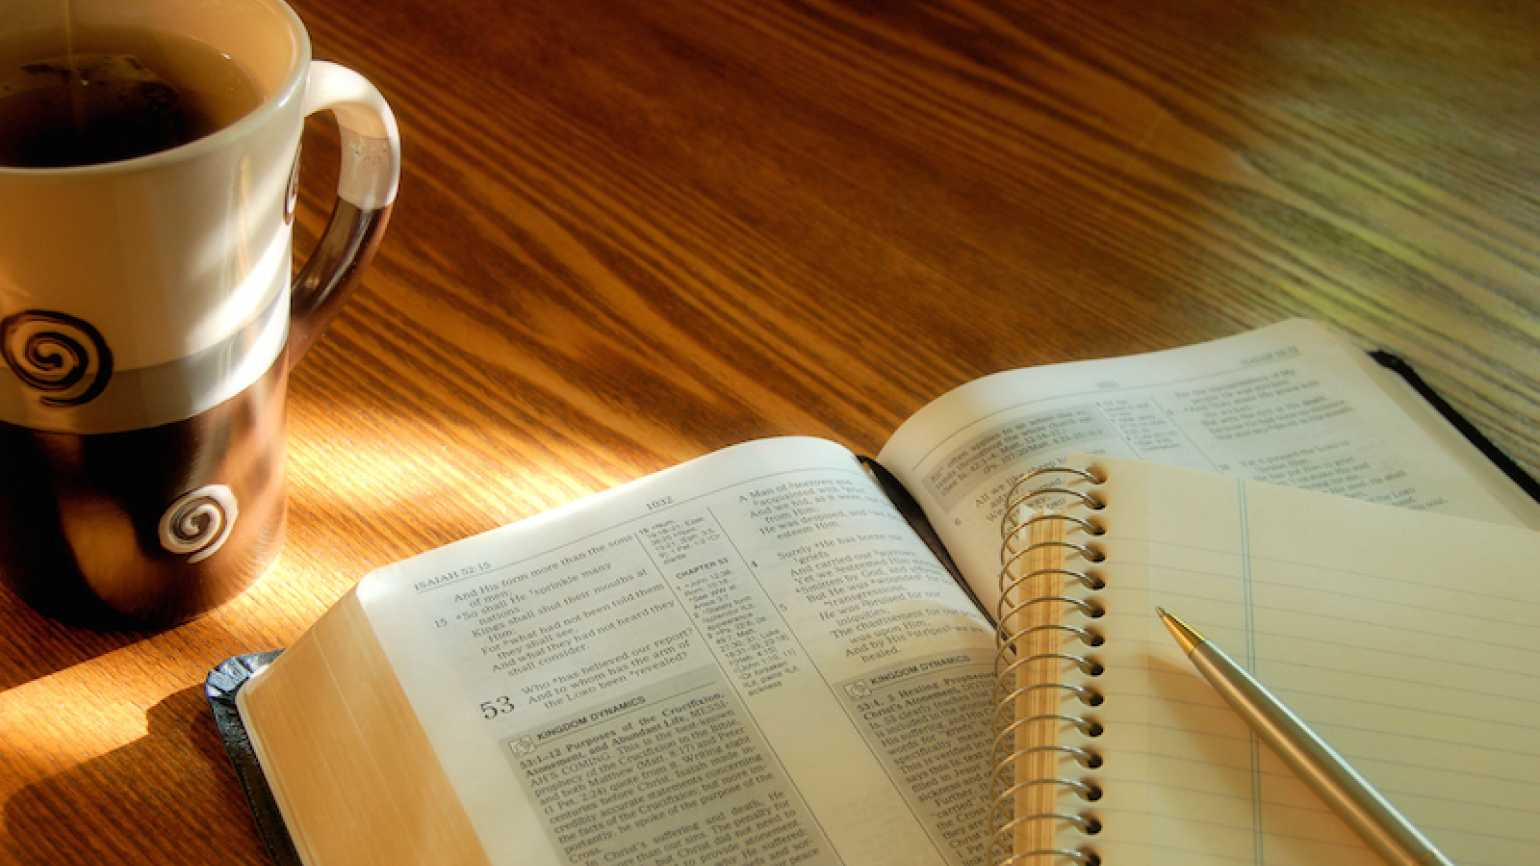 A Bible and journal. Photo by Geri-Jean Blanchard, Thinkstock.